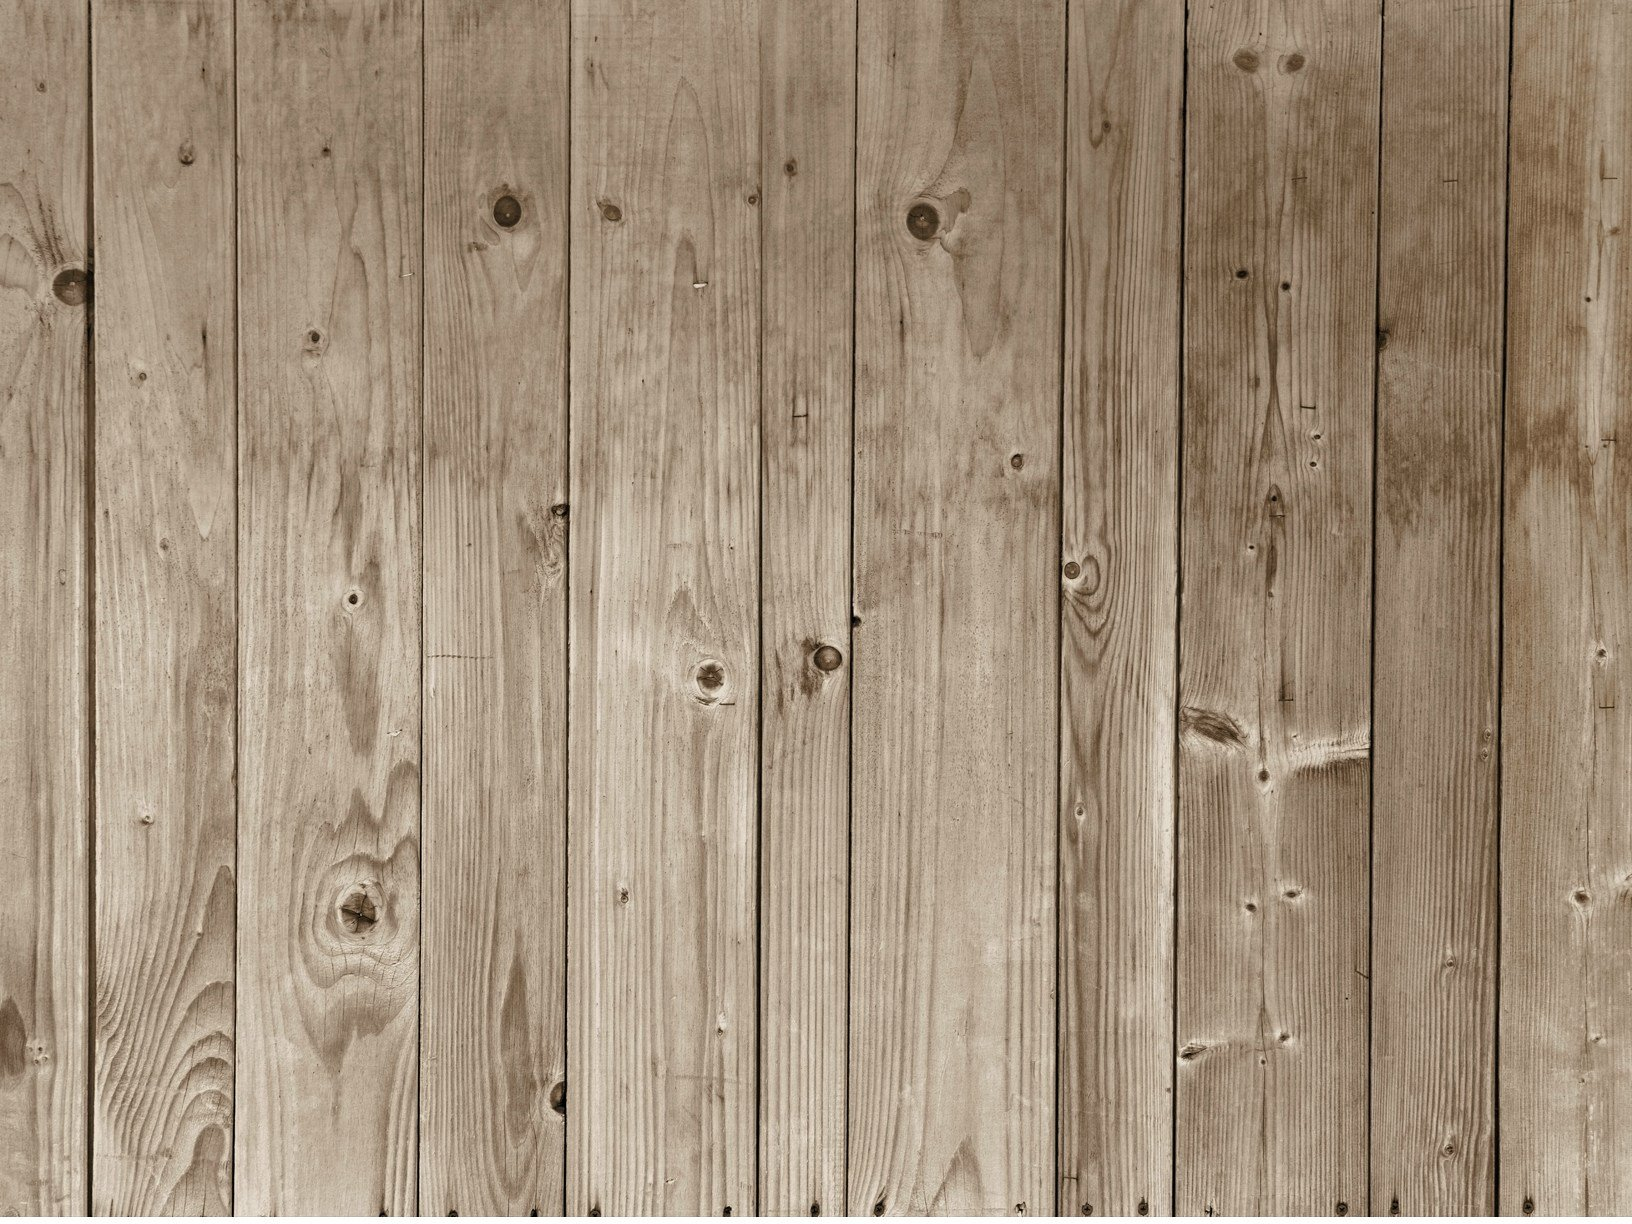 I Love Wallpaper Wood Effect : Wood effect TRAINING By Wall&dec? design Giovanni Pagani